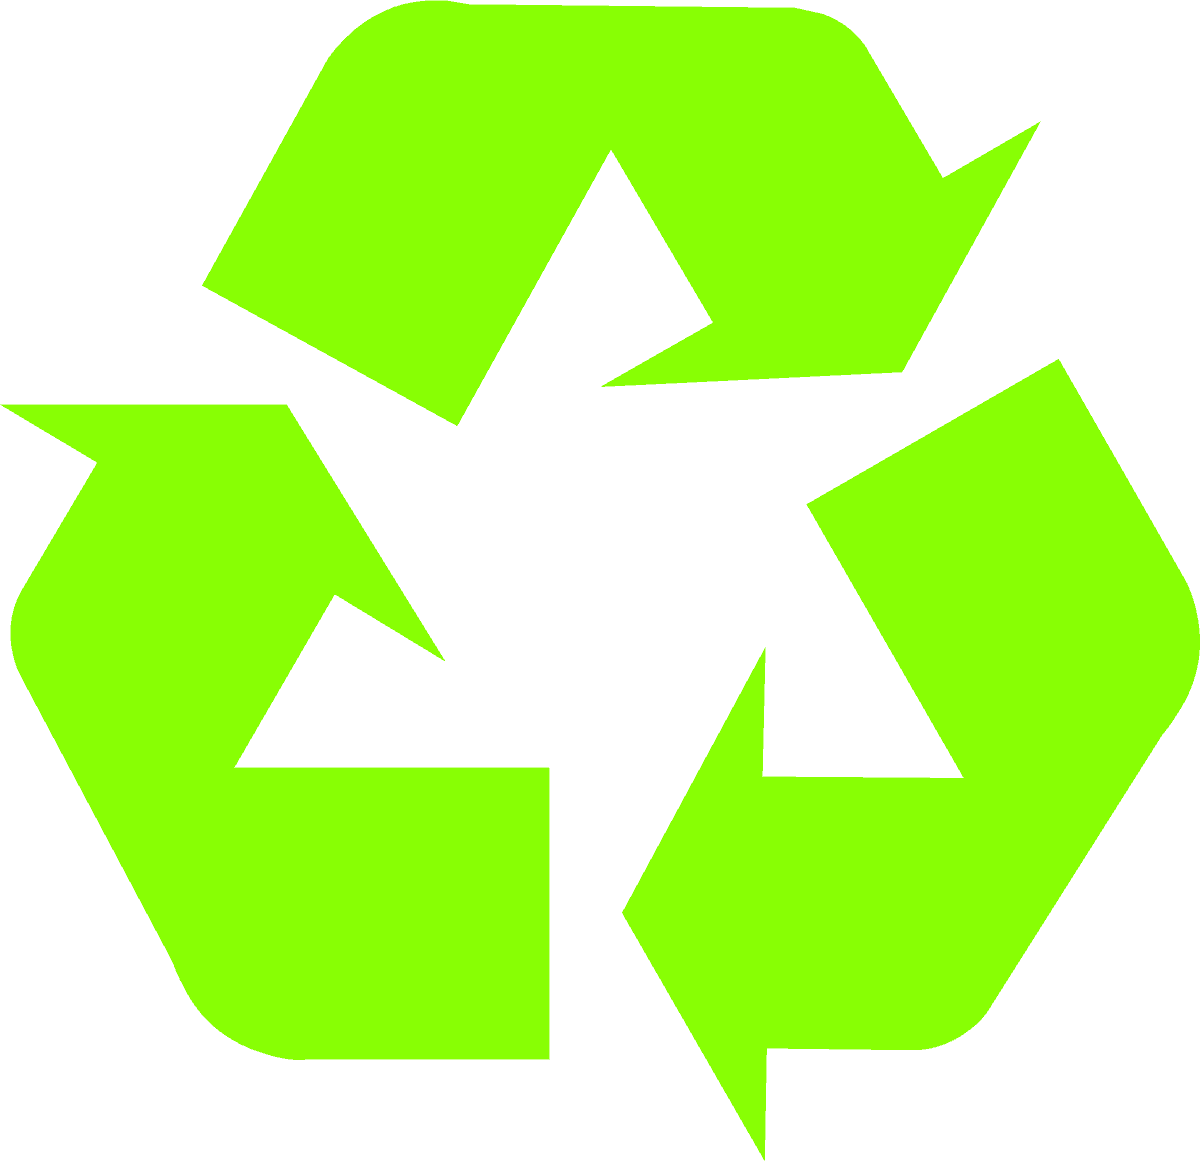 recycling-symbol-icon-solid-light-green